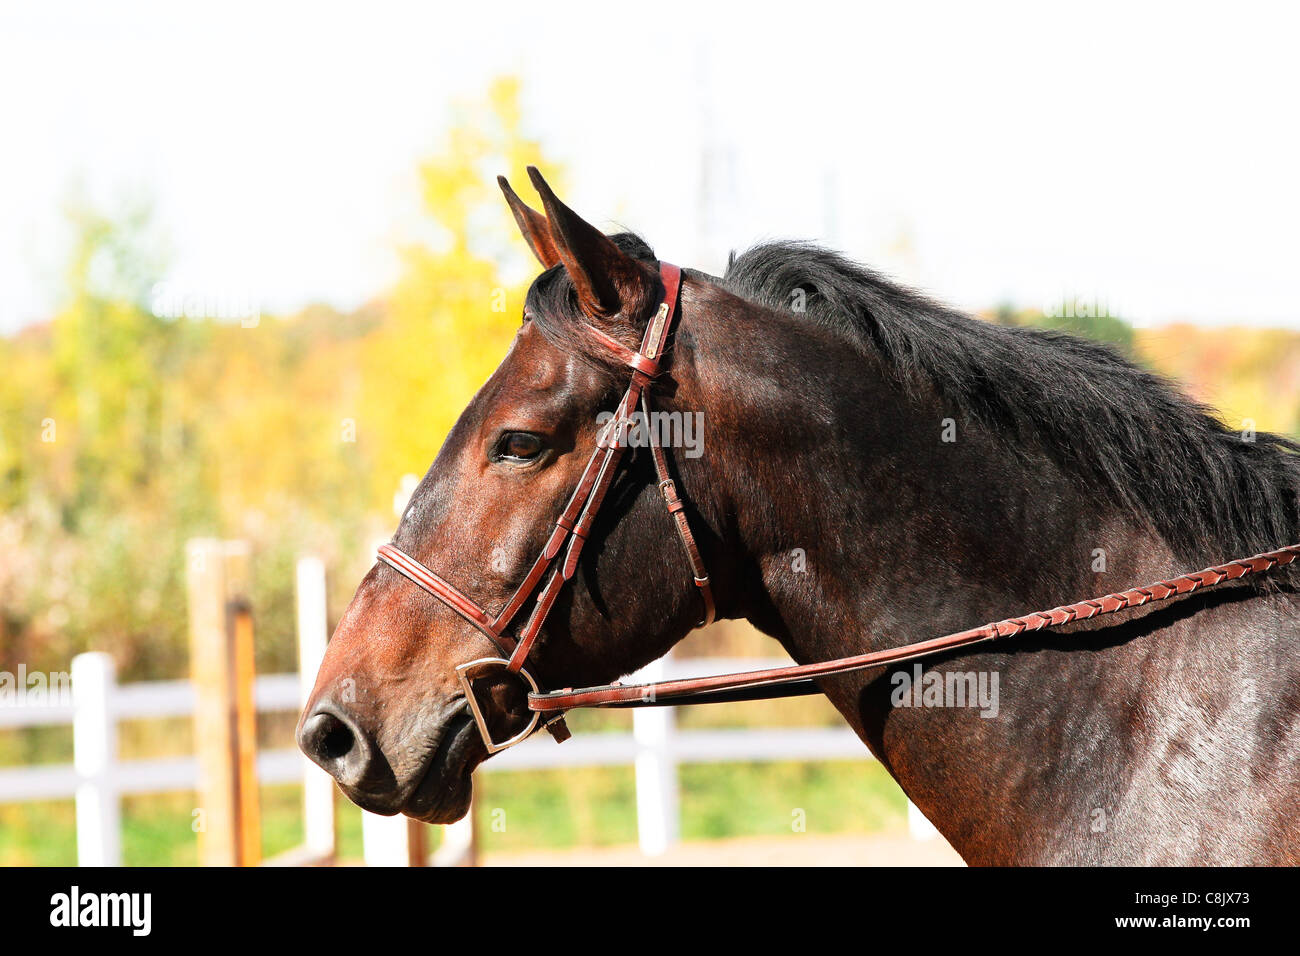 Bay horse head portrait - Stock Image